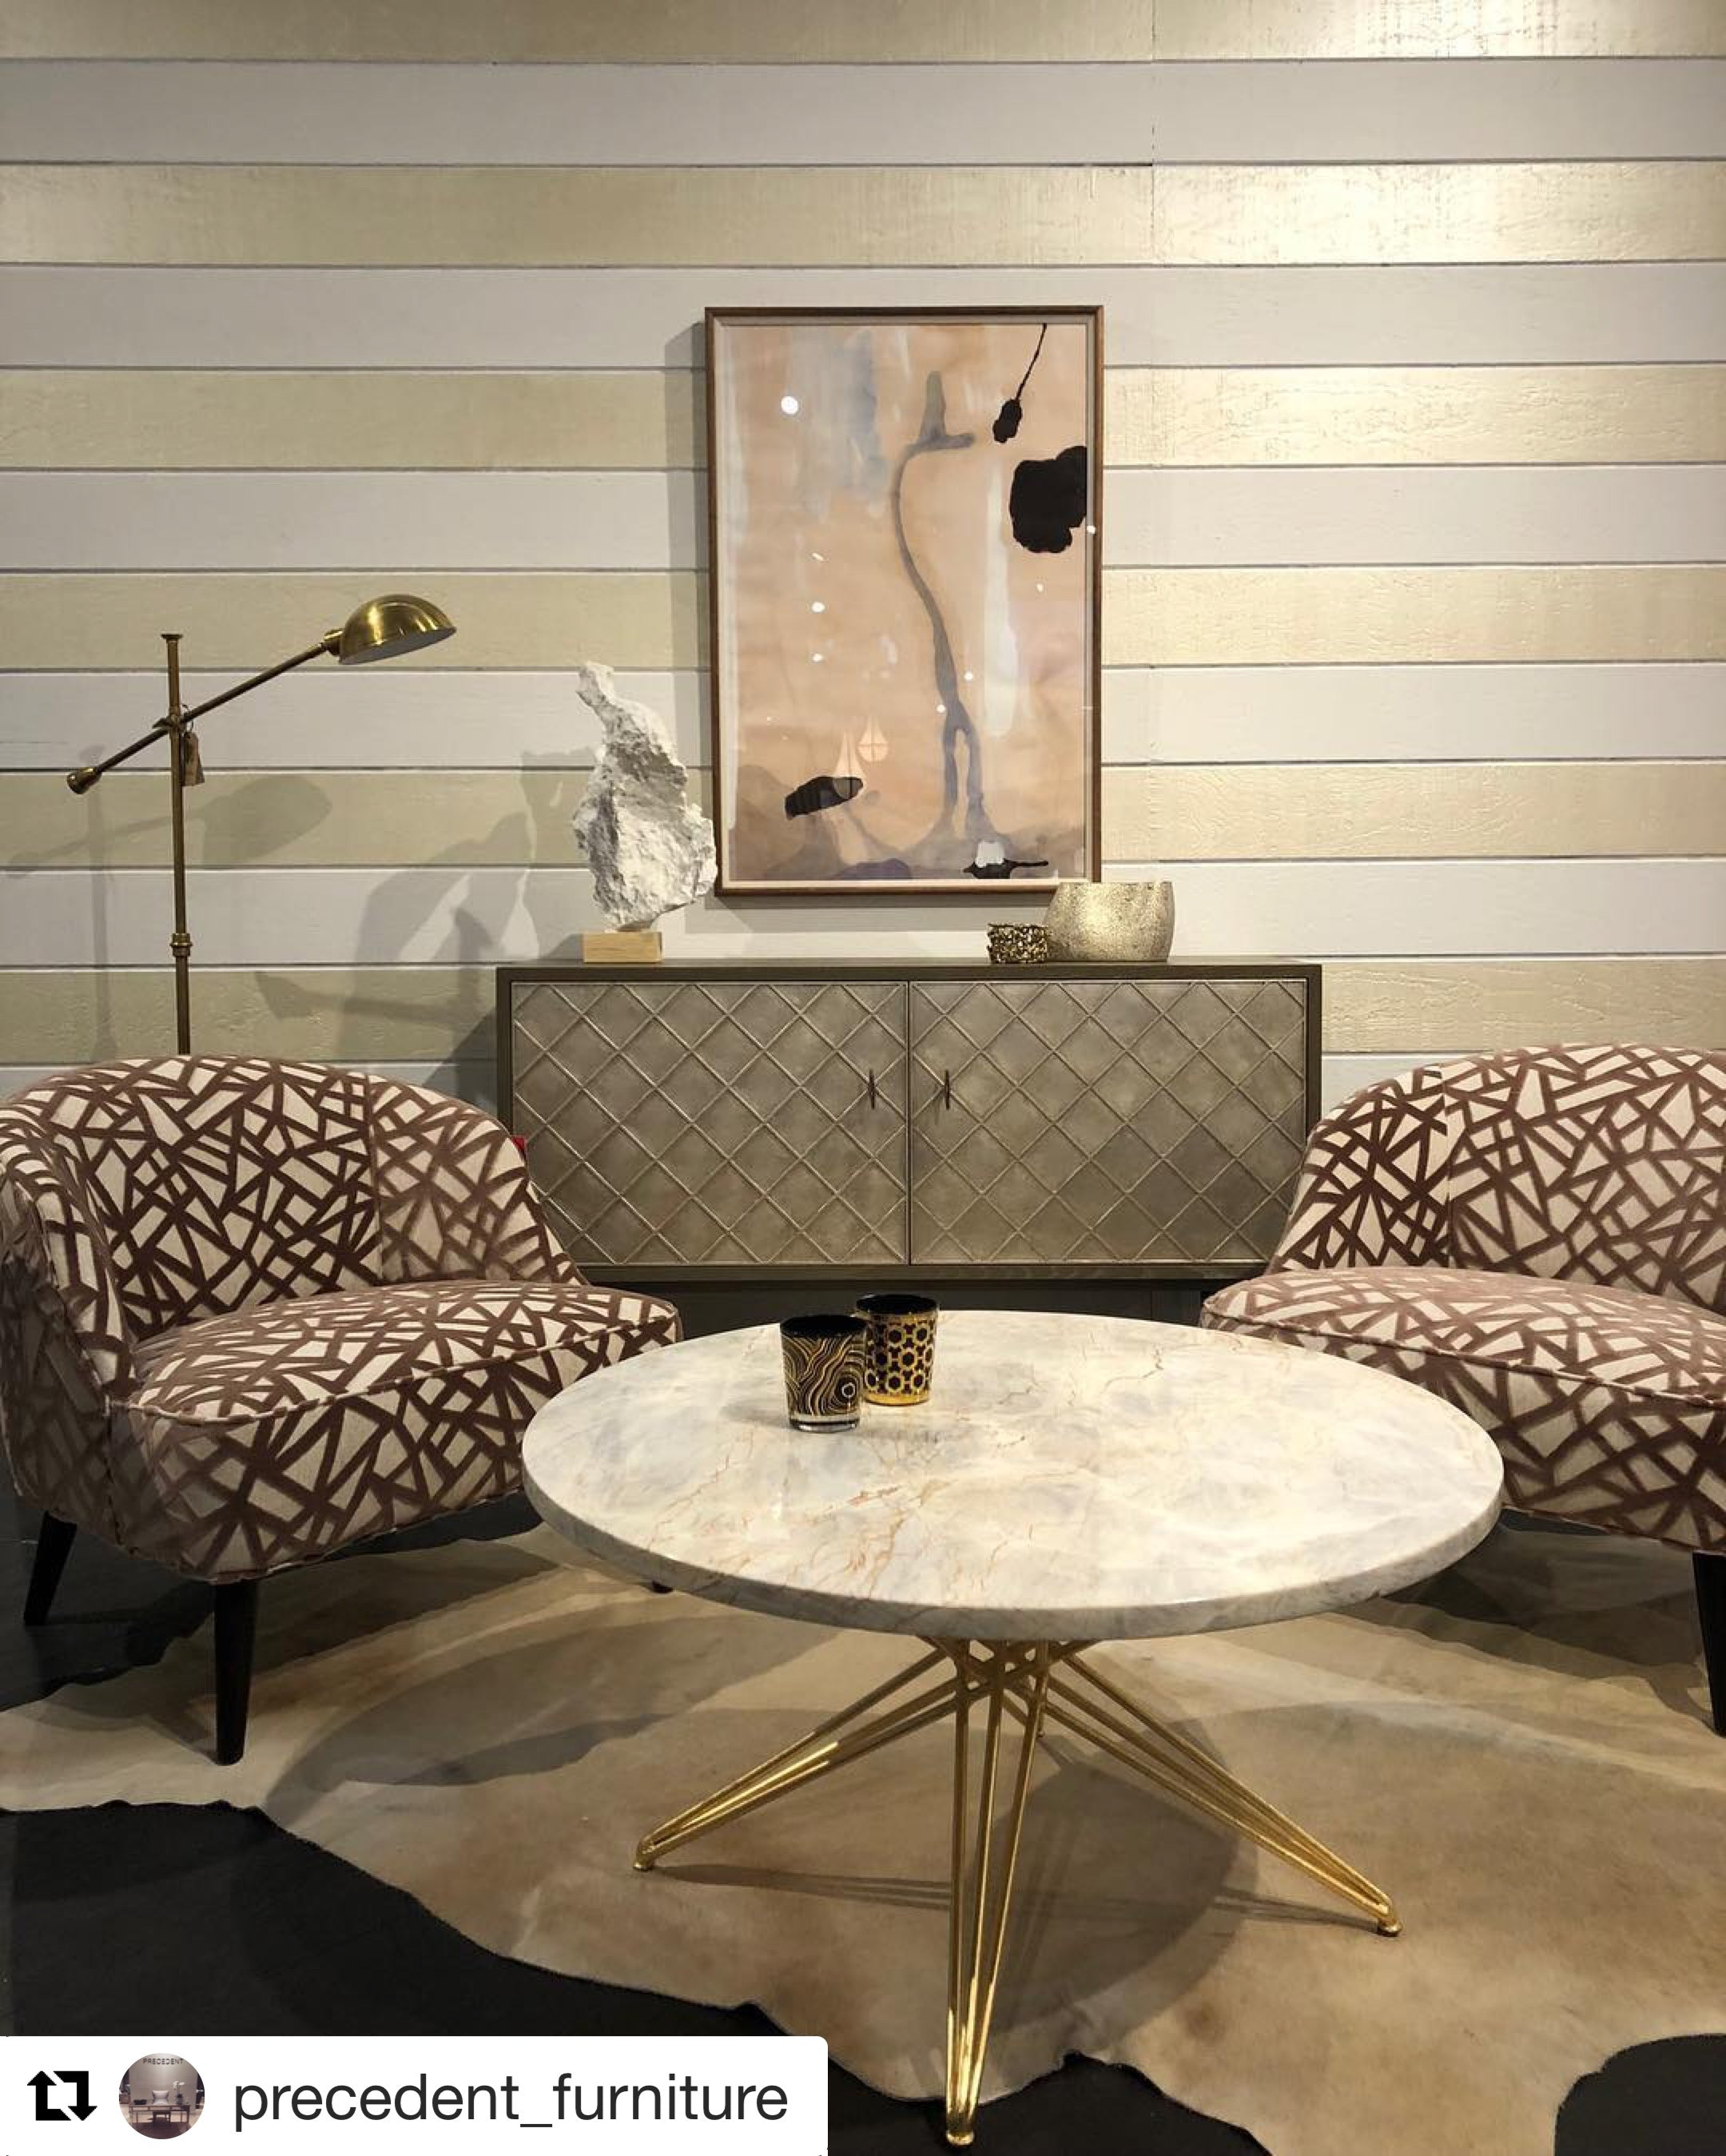 Photo: Brentwood Textiles on Precedent Furniture